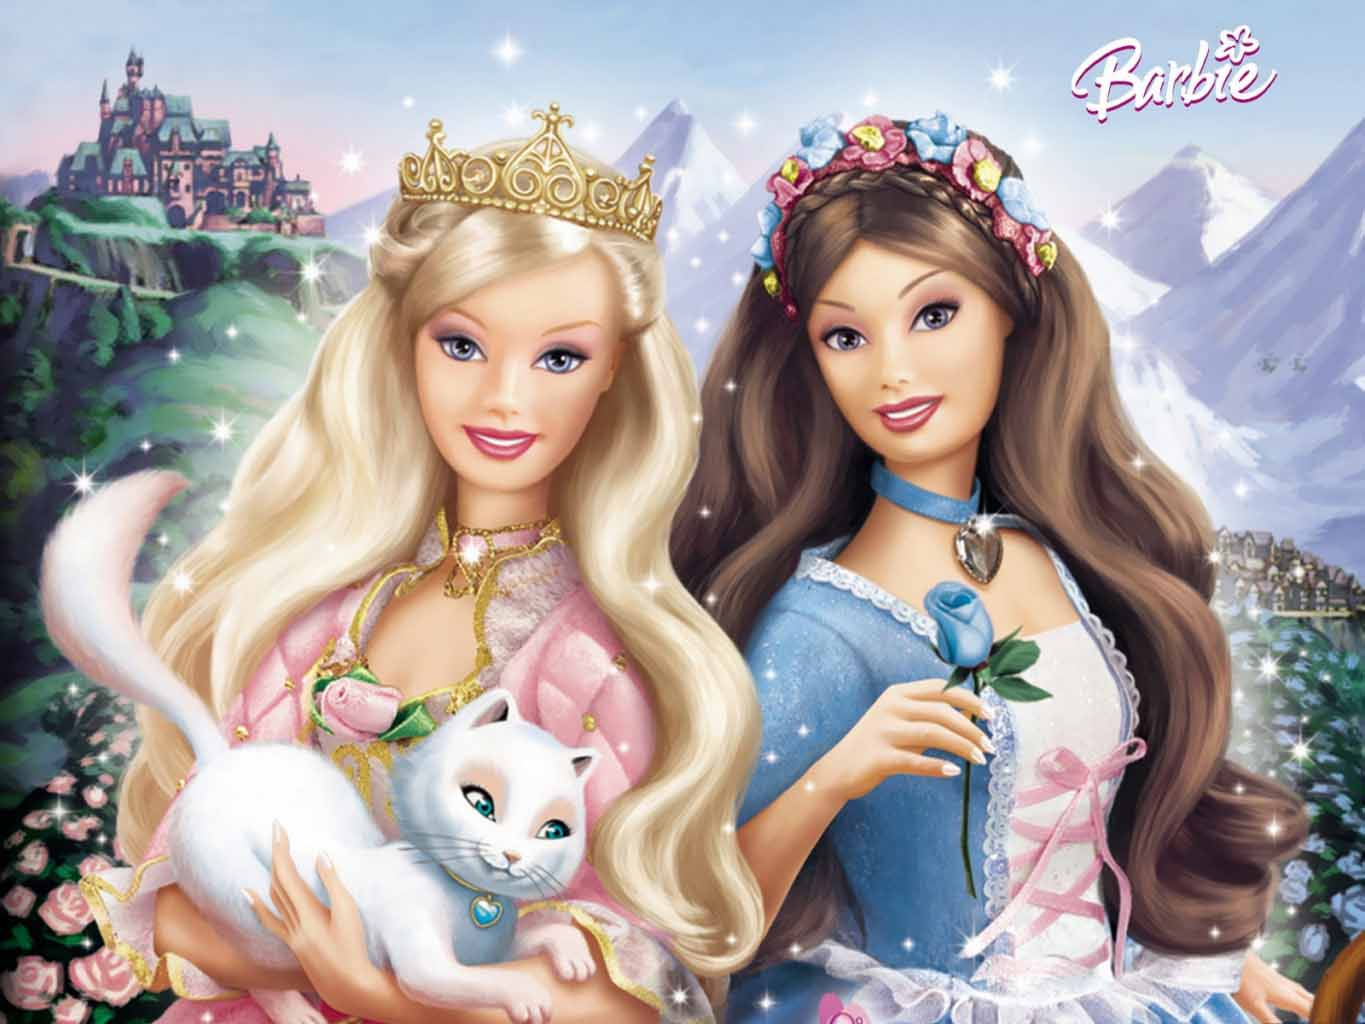 Barbie wallpapers wallpaper cave - Barbie pictures download free ...